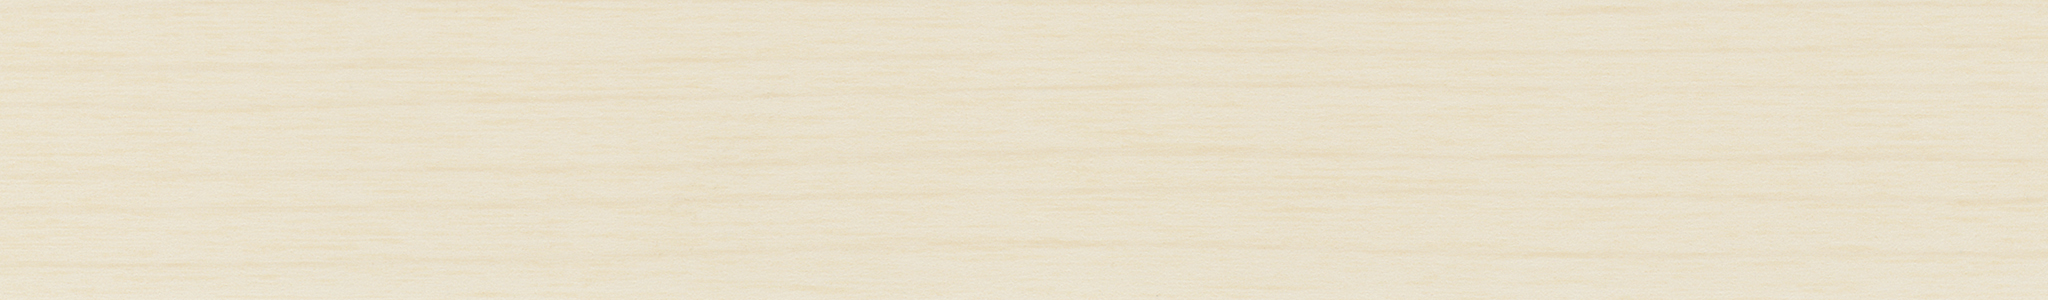 HD 263306 ABS Edge Maple Murnau Pearl